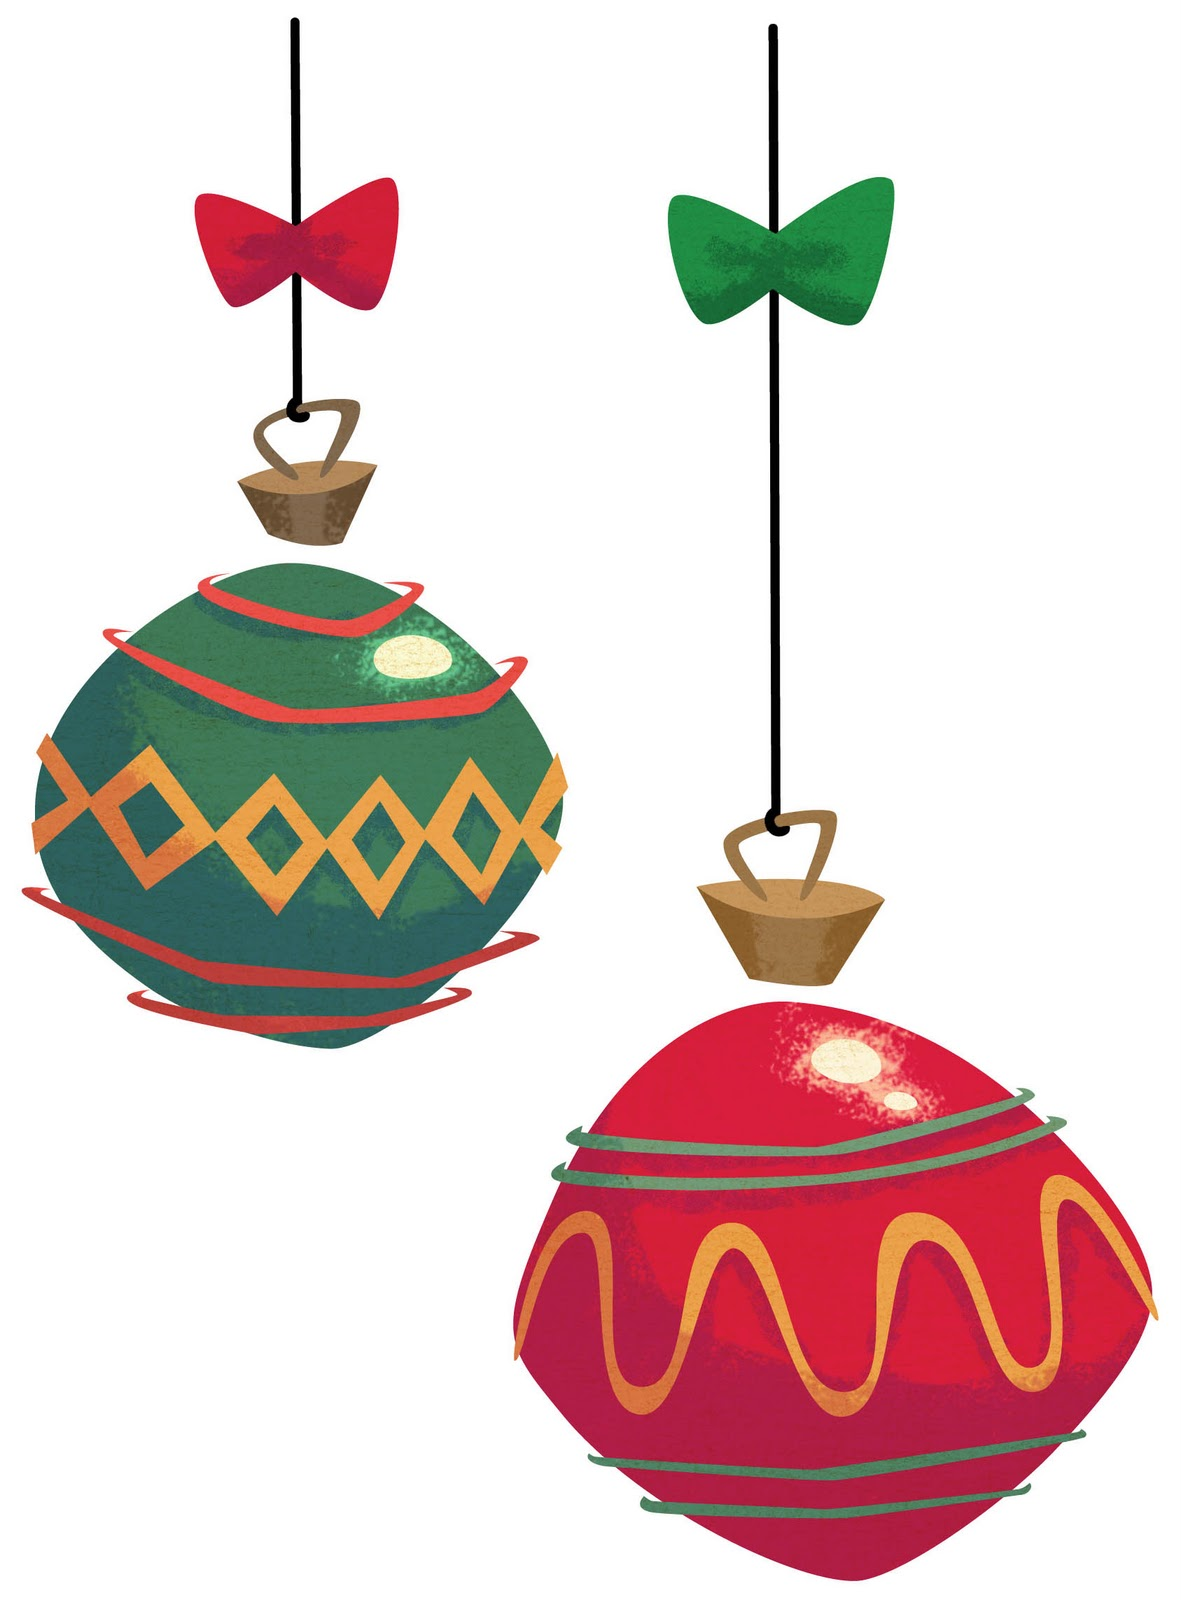 Christmas ornaments clipart printables free image freeuse stock Christmas ornaments clipart printables free - ClipartFest image freeuse stock